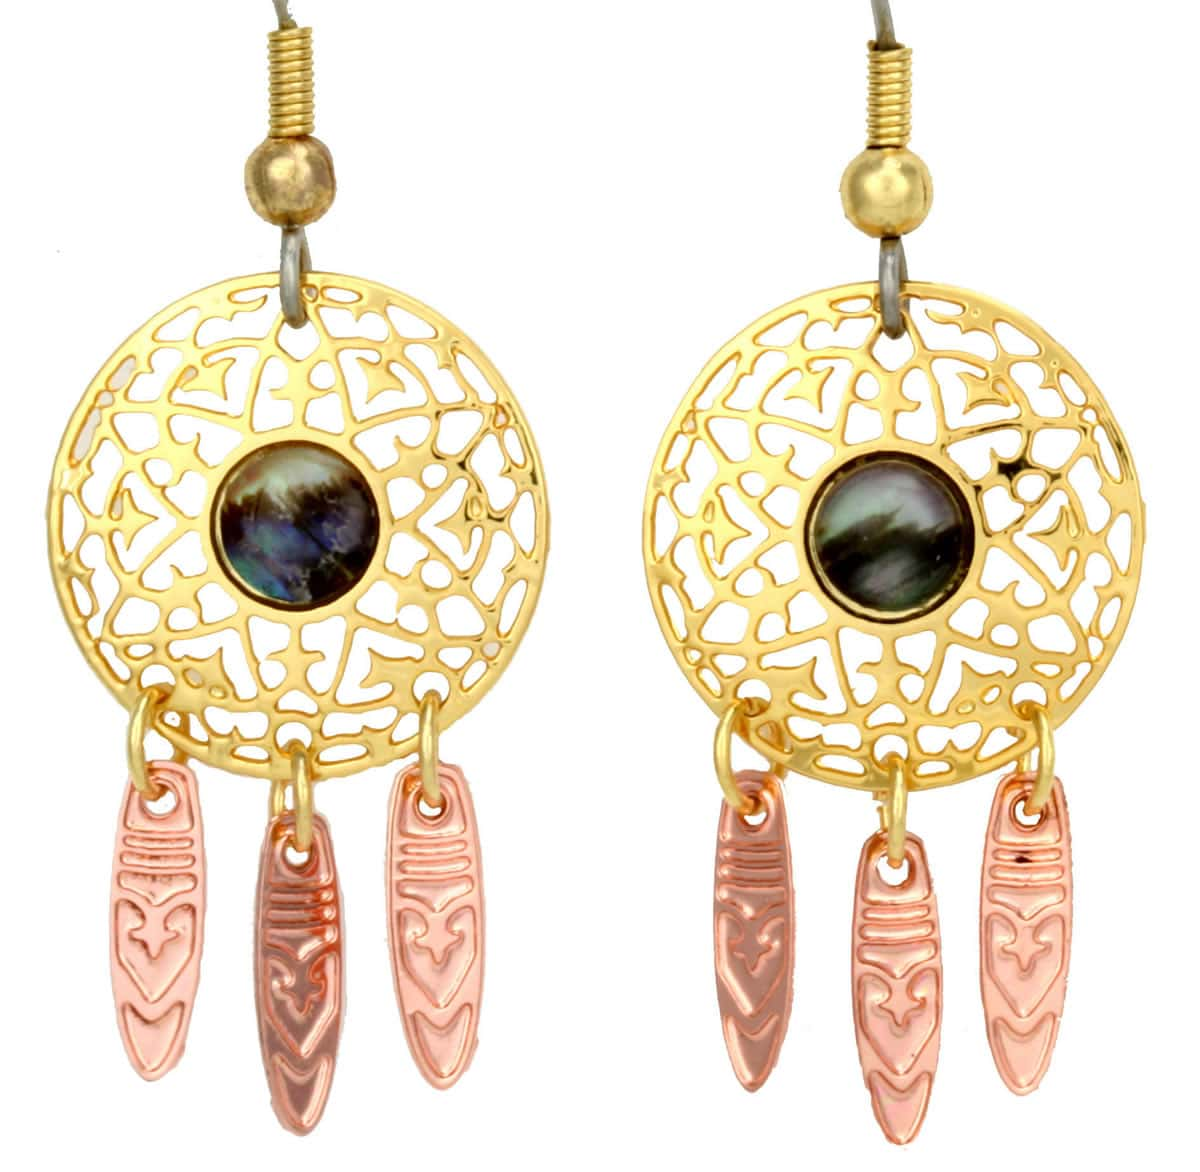 Unique handmade earrings, gold plated dream catcher earrings with copper dangles